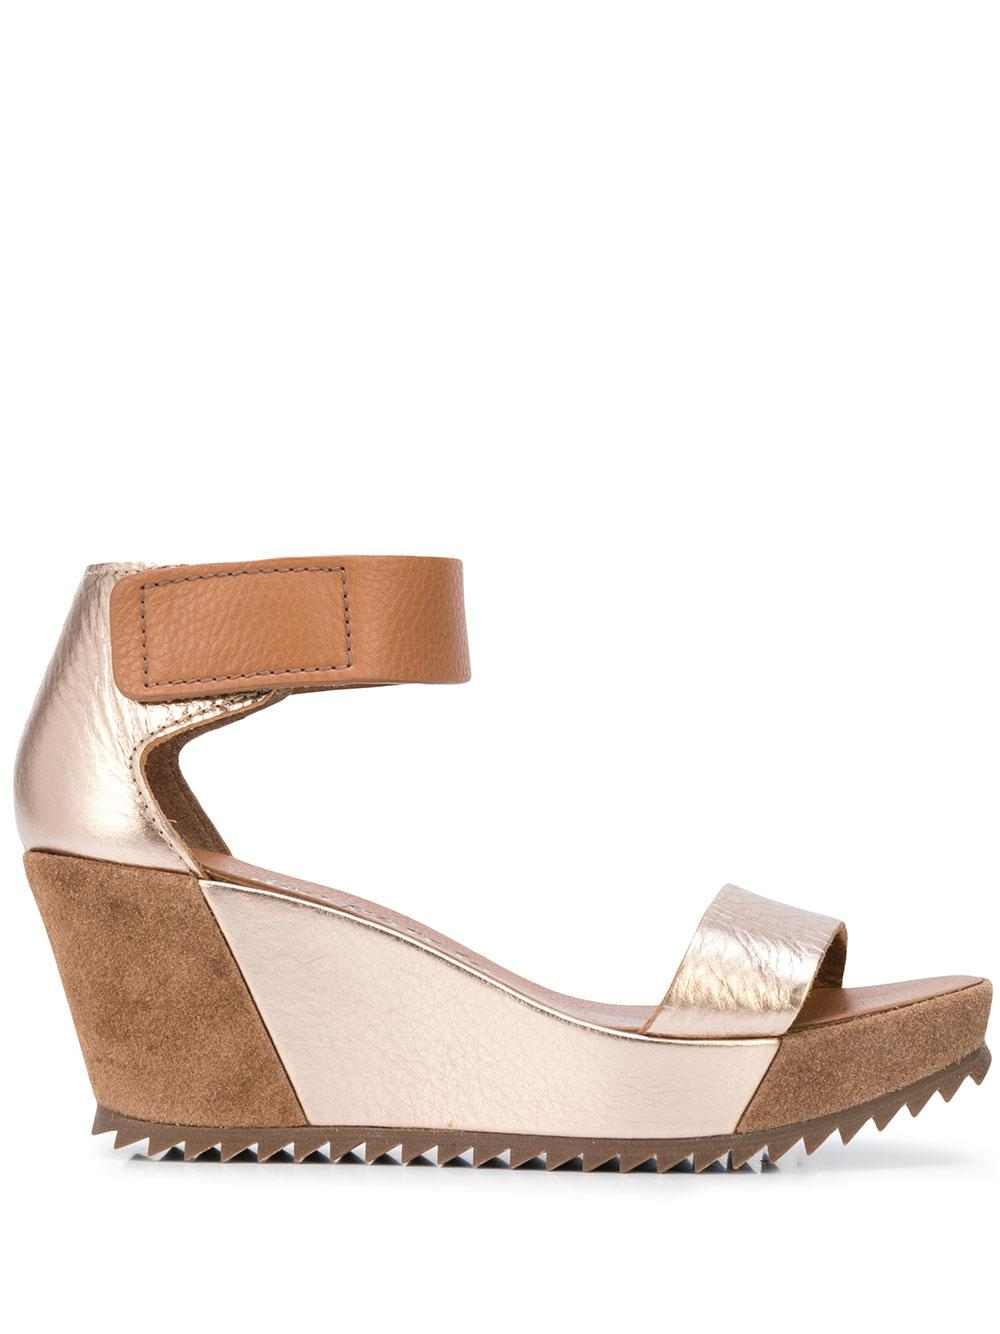 Lame Platform Wedge Sandal With Ankle St